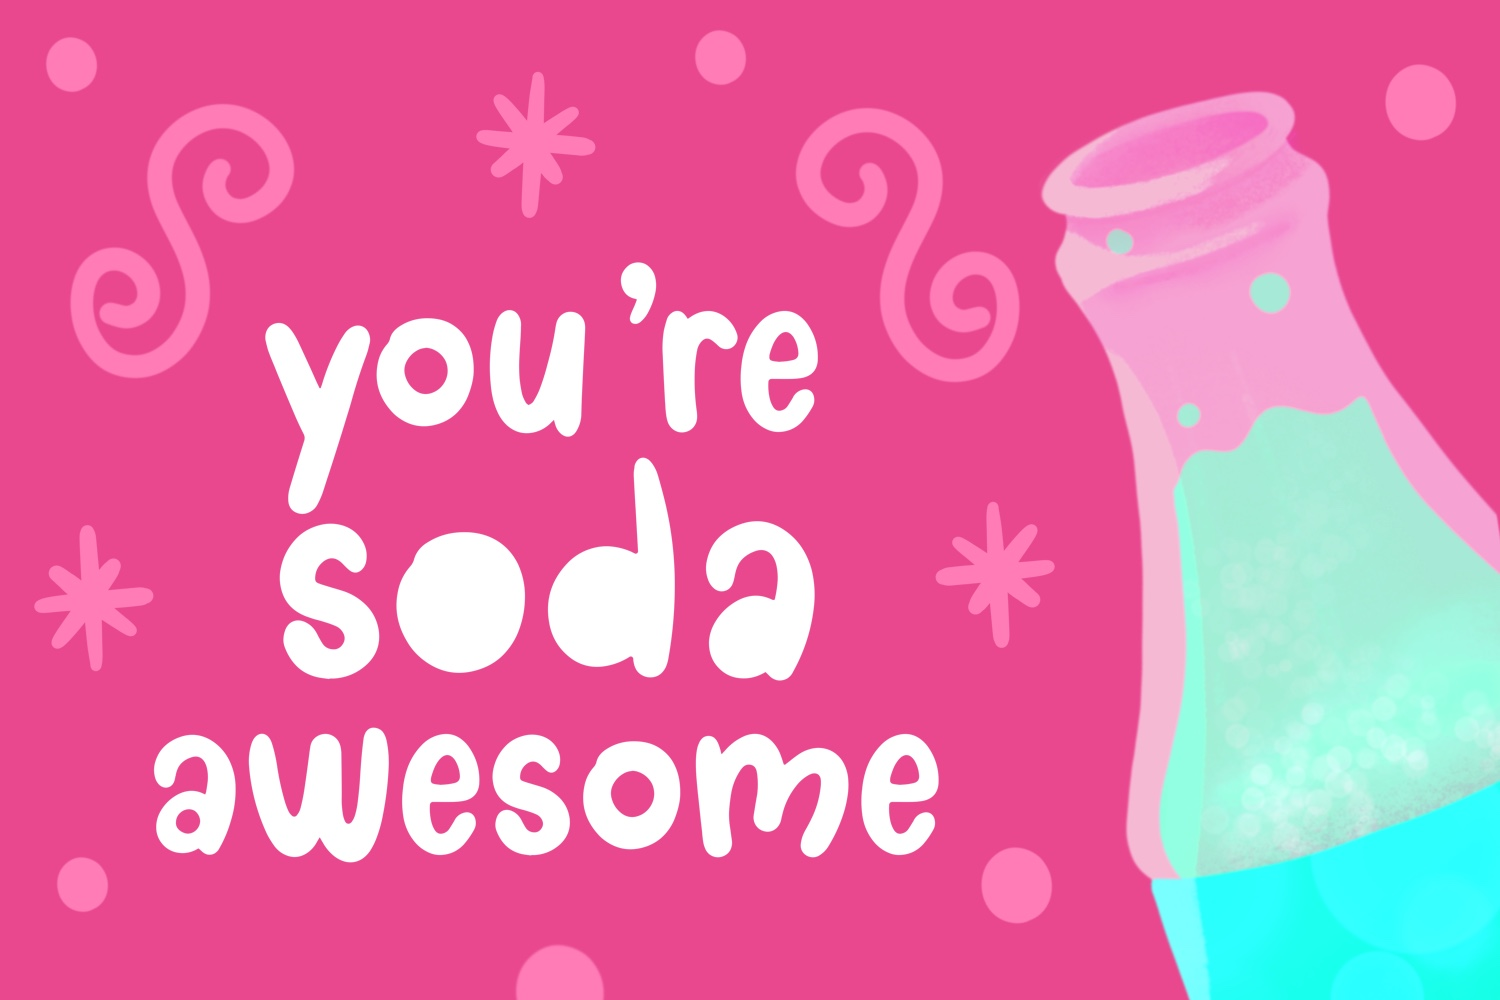 Doodle pop - a cute interchangeable lowercase font duo example image 2